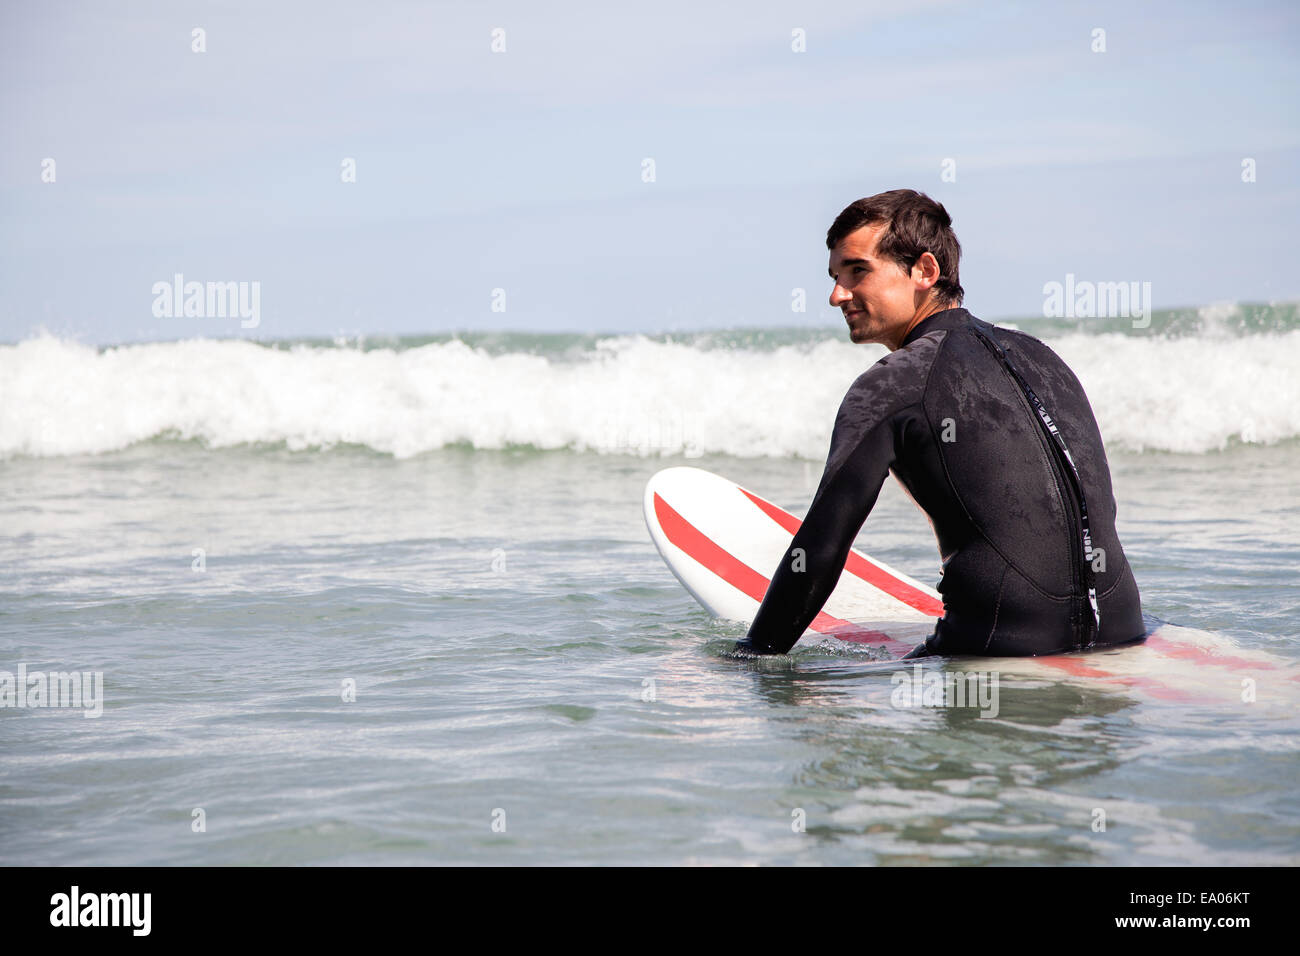 Young man sitting on surfboard in sea Stock Photo